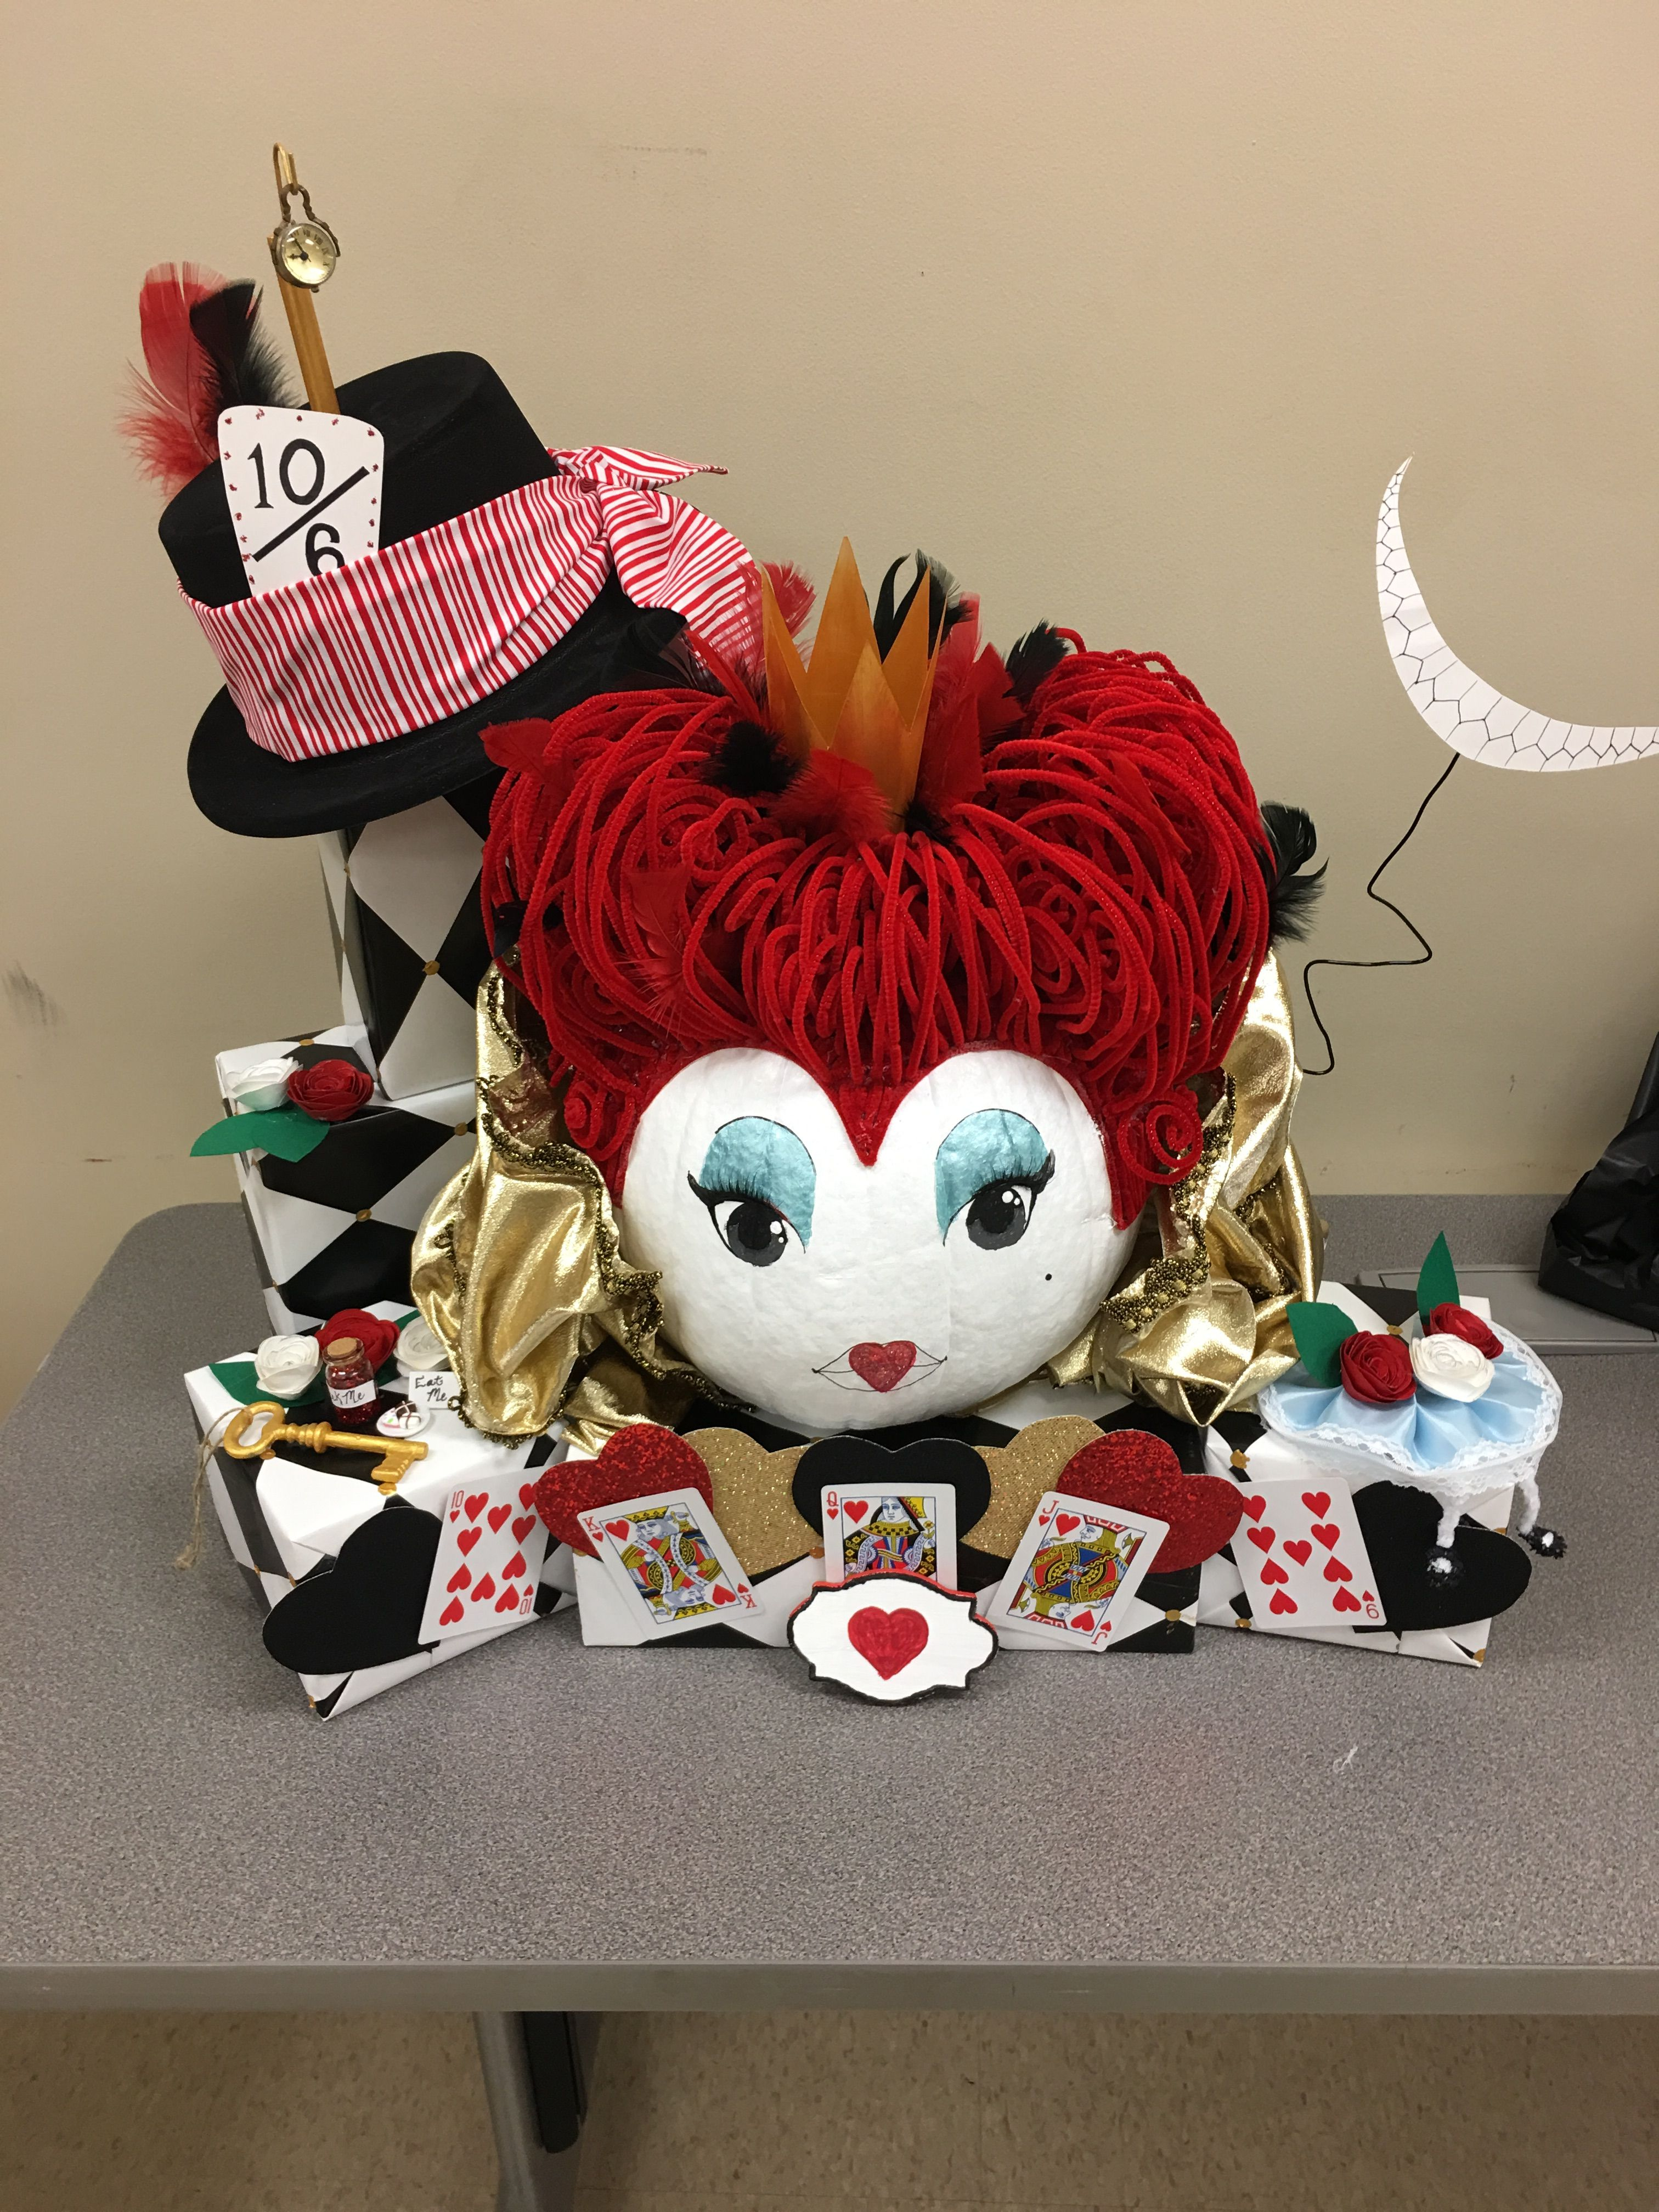 Queen of Hearts pumpkin design. Group effort at work for our annual pumpkin design contest.